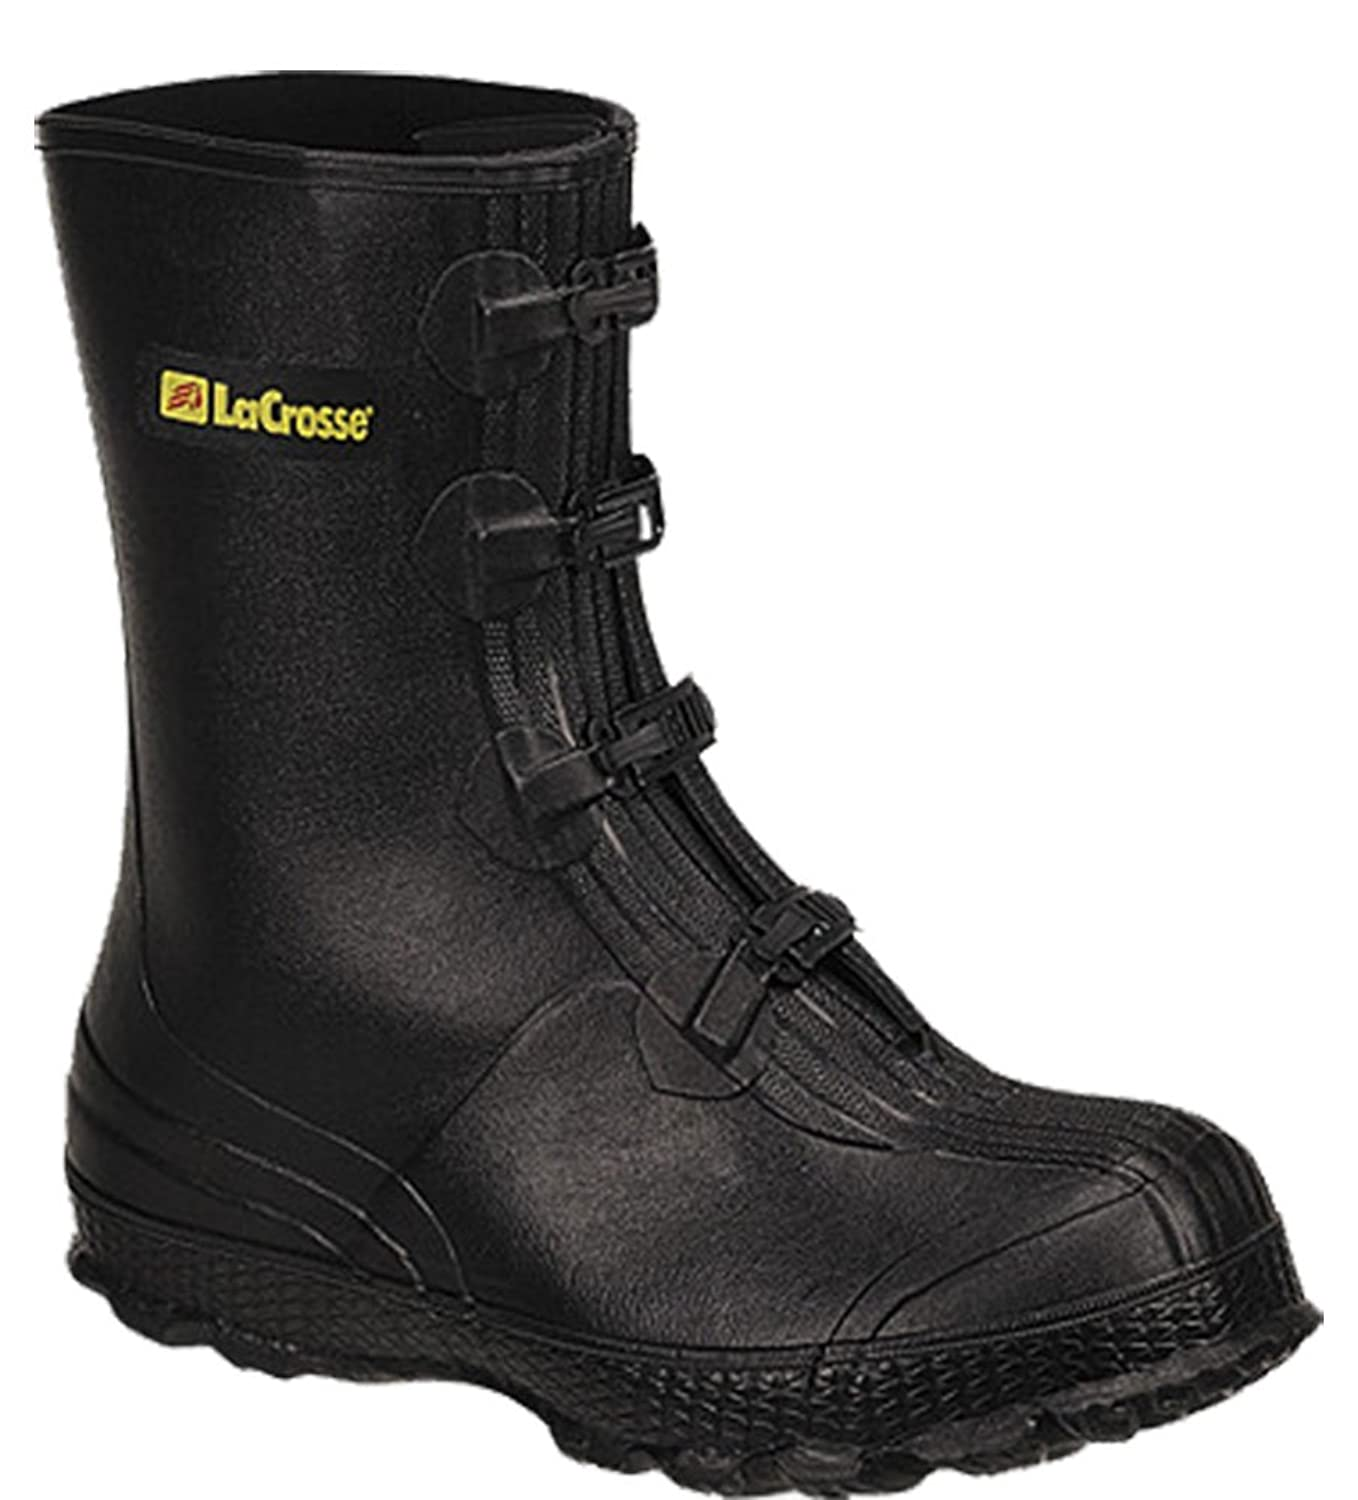 266160 Lacrosse Men's Z-Series Overshoe Rubber Boots - Black